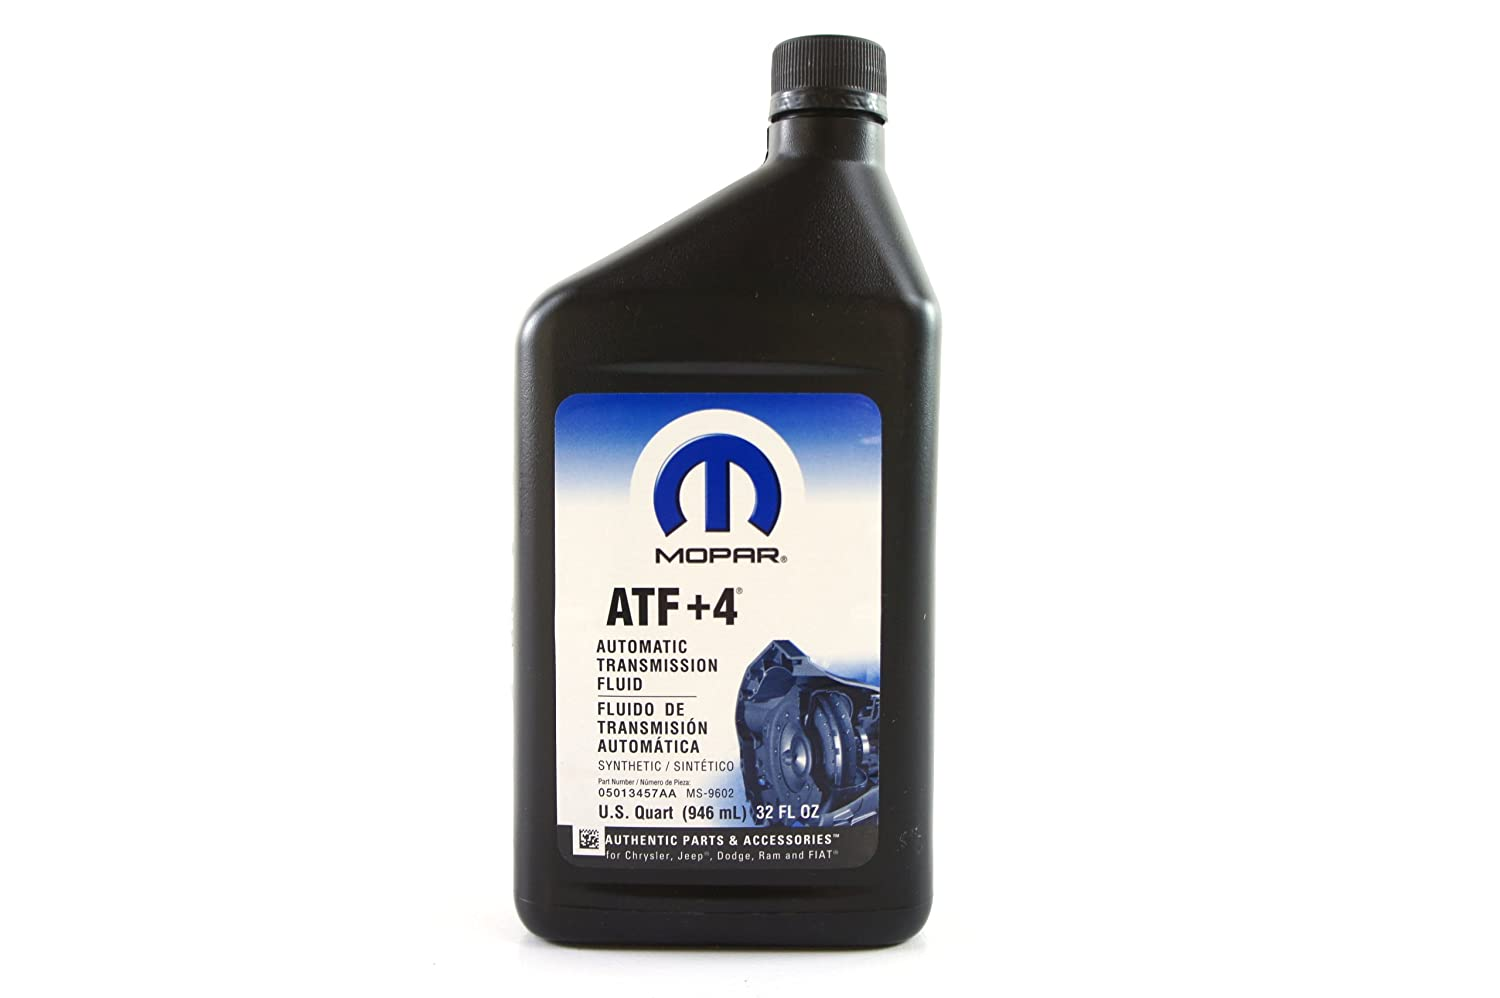 Amazon.com: Chrysler (68218057AA) Genuine Mopar Fluid ATF+4 Automatic Transmission  Fluid - 1 Quart: Automotive